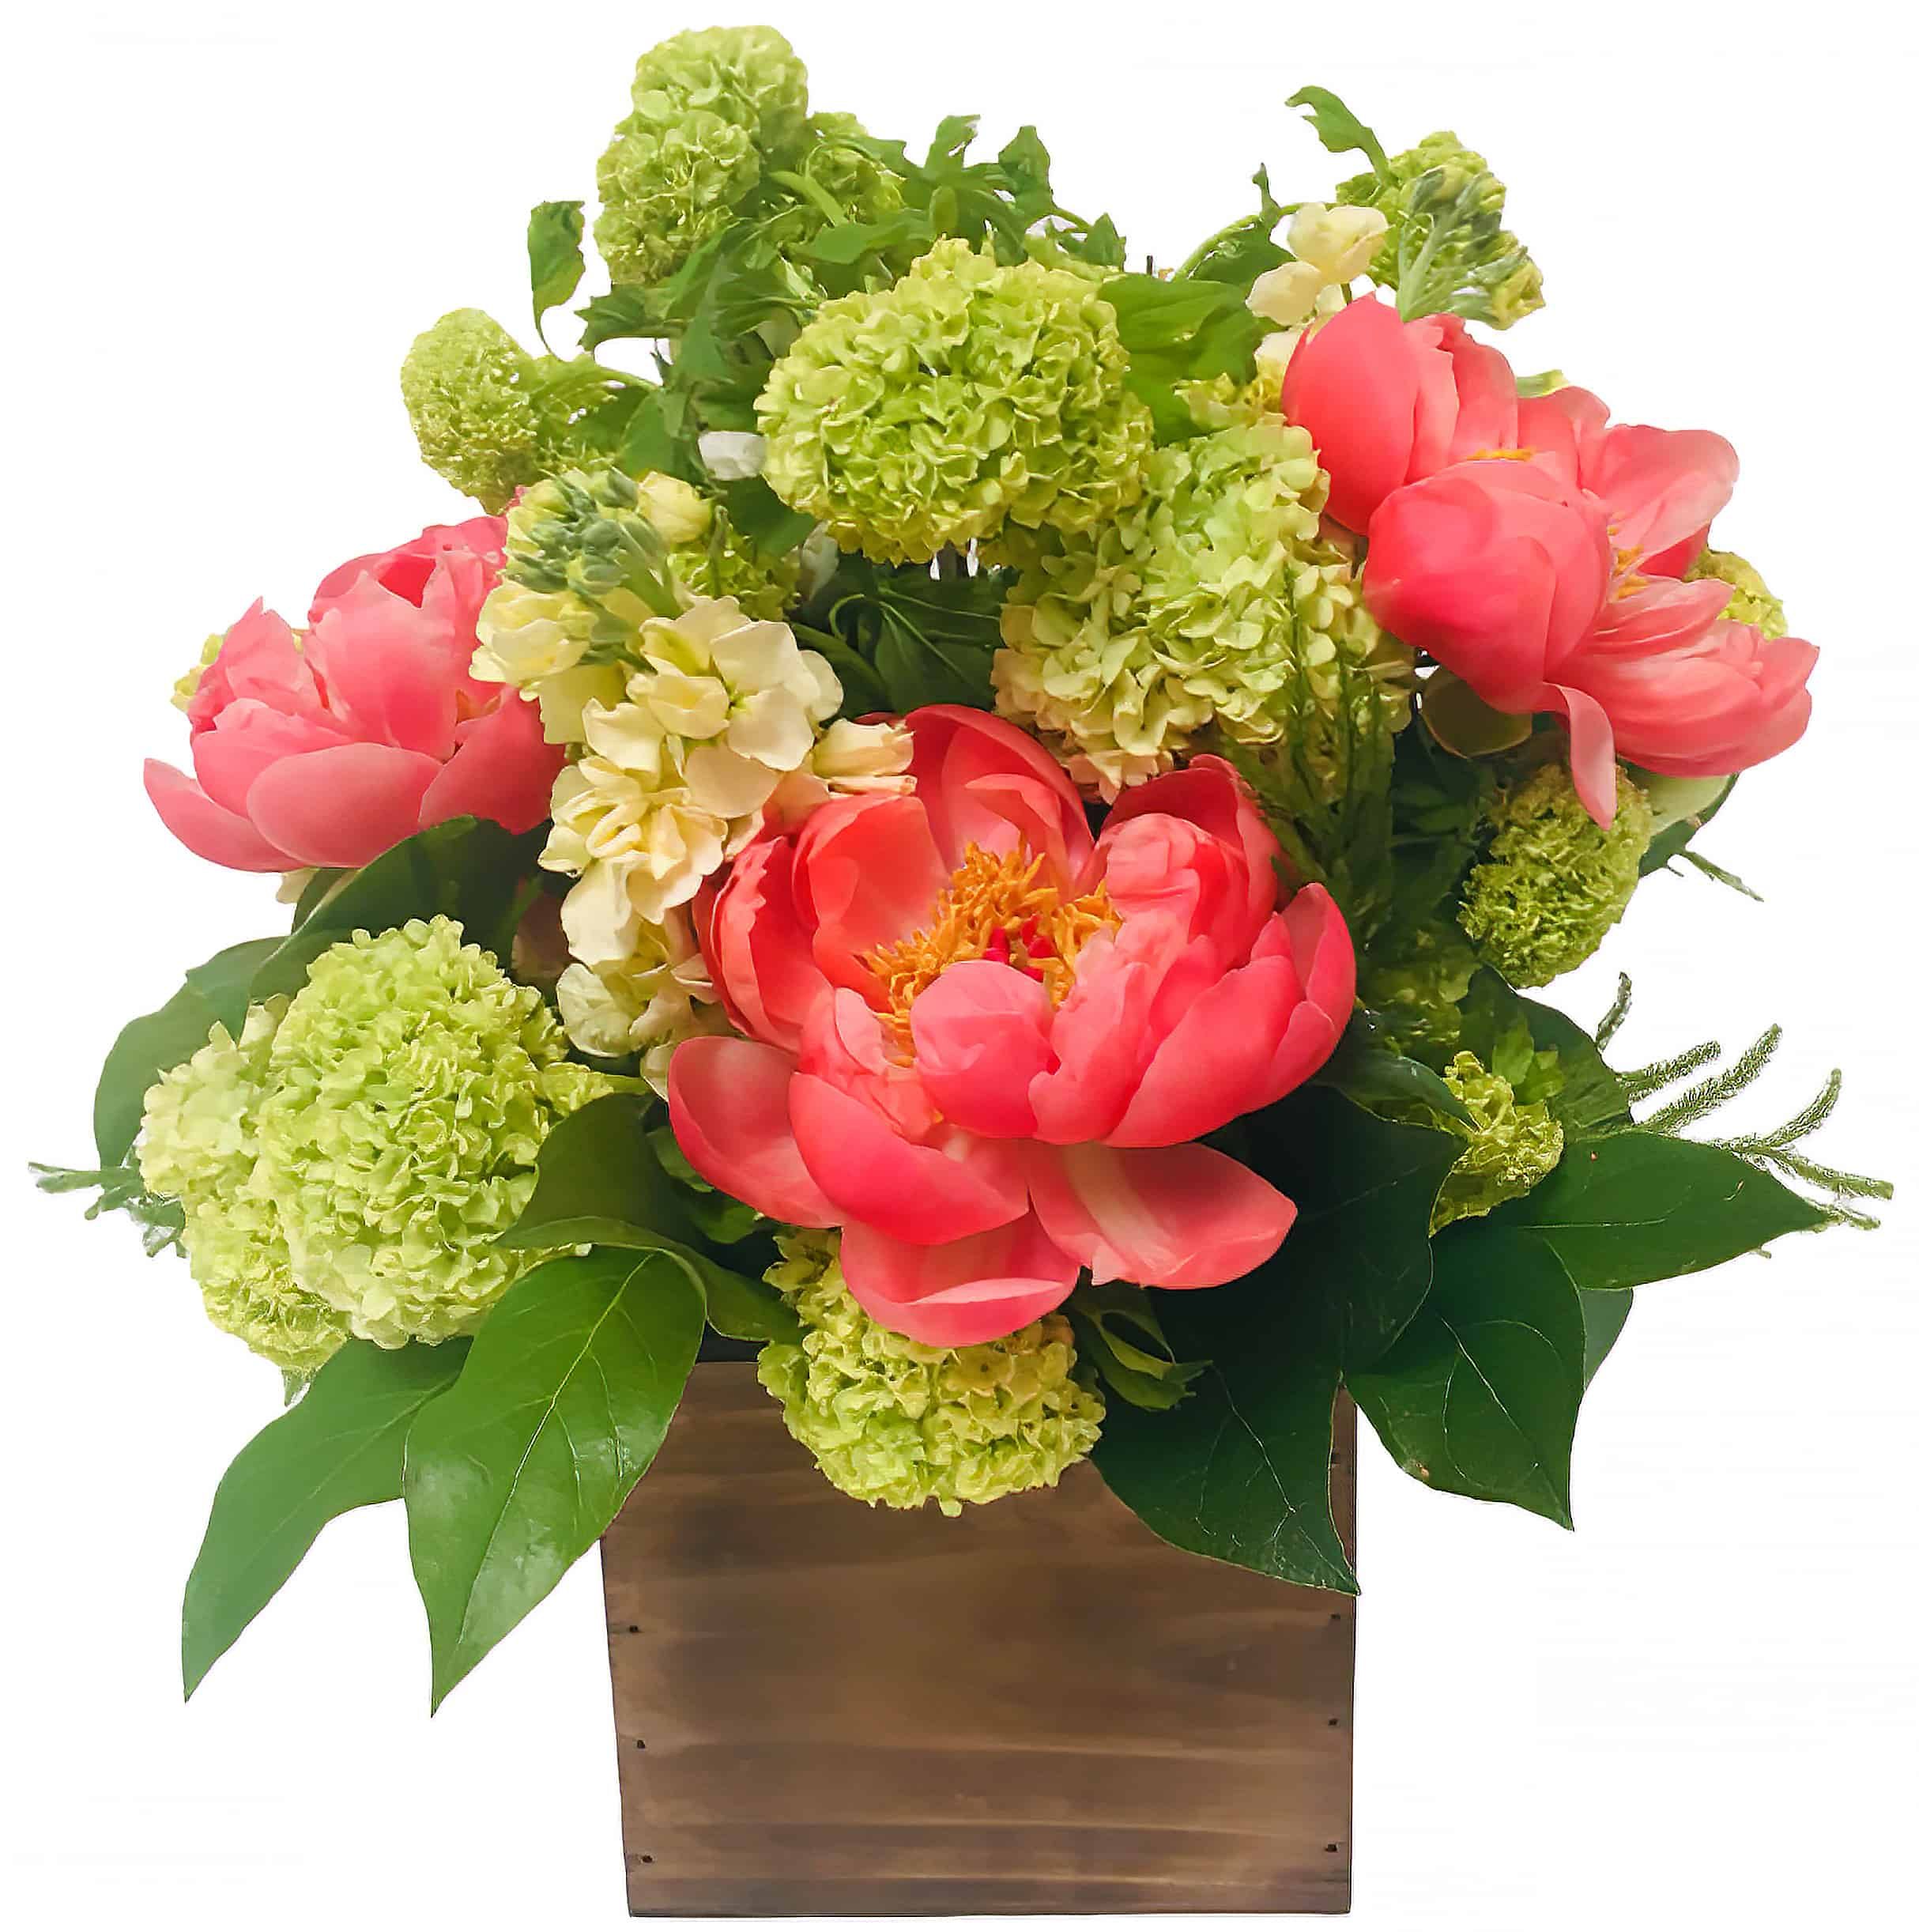 Boxed Peonies Flower Arrangement